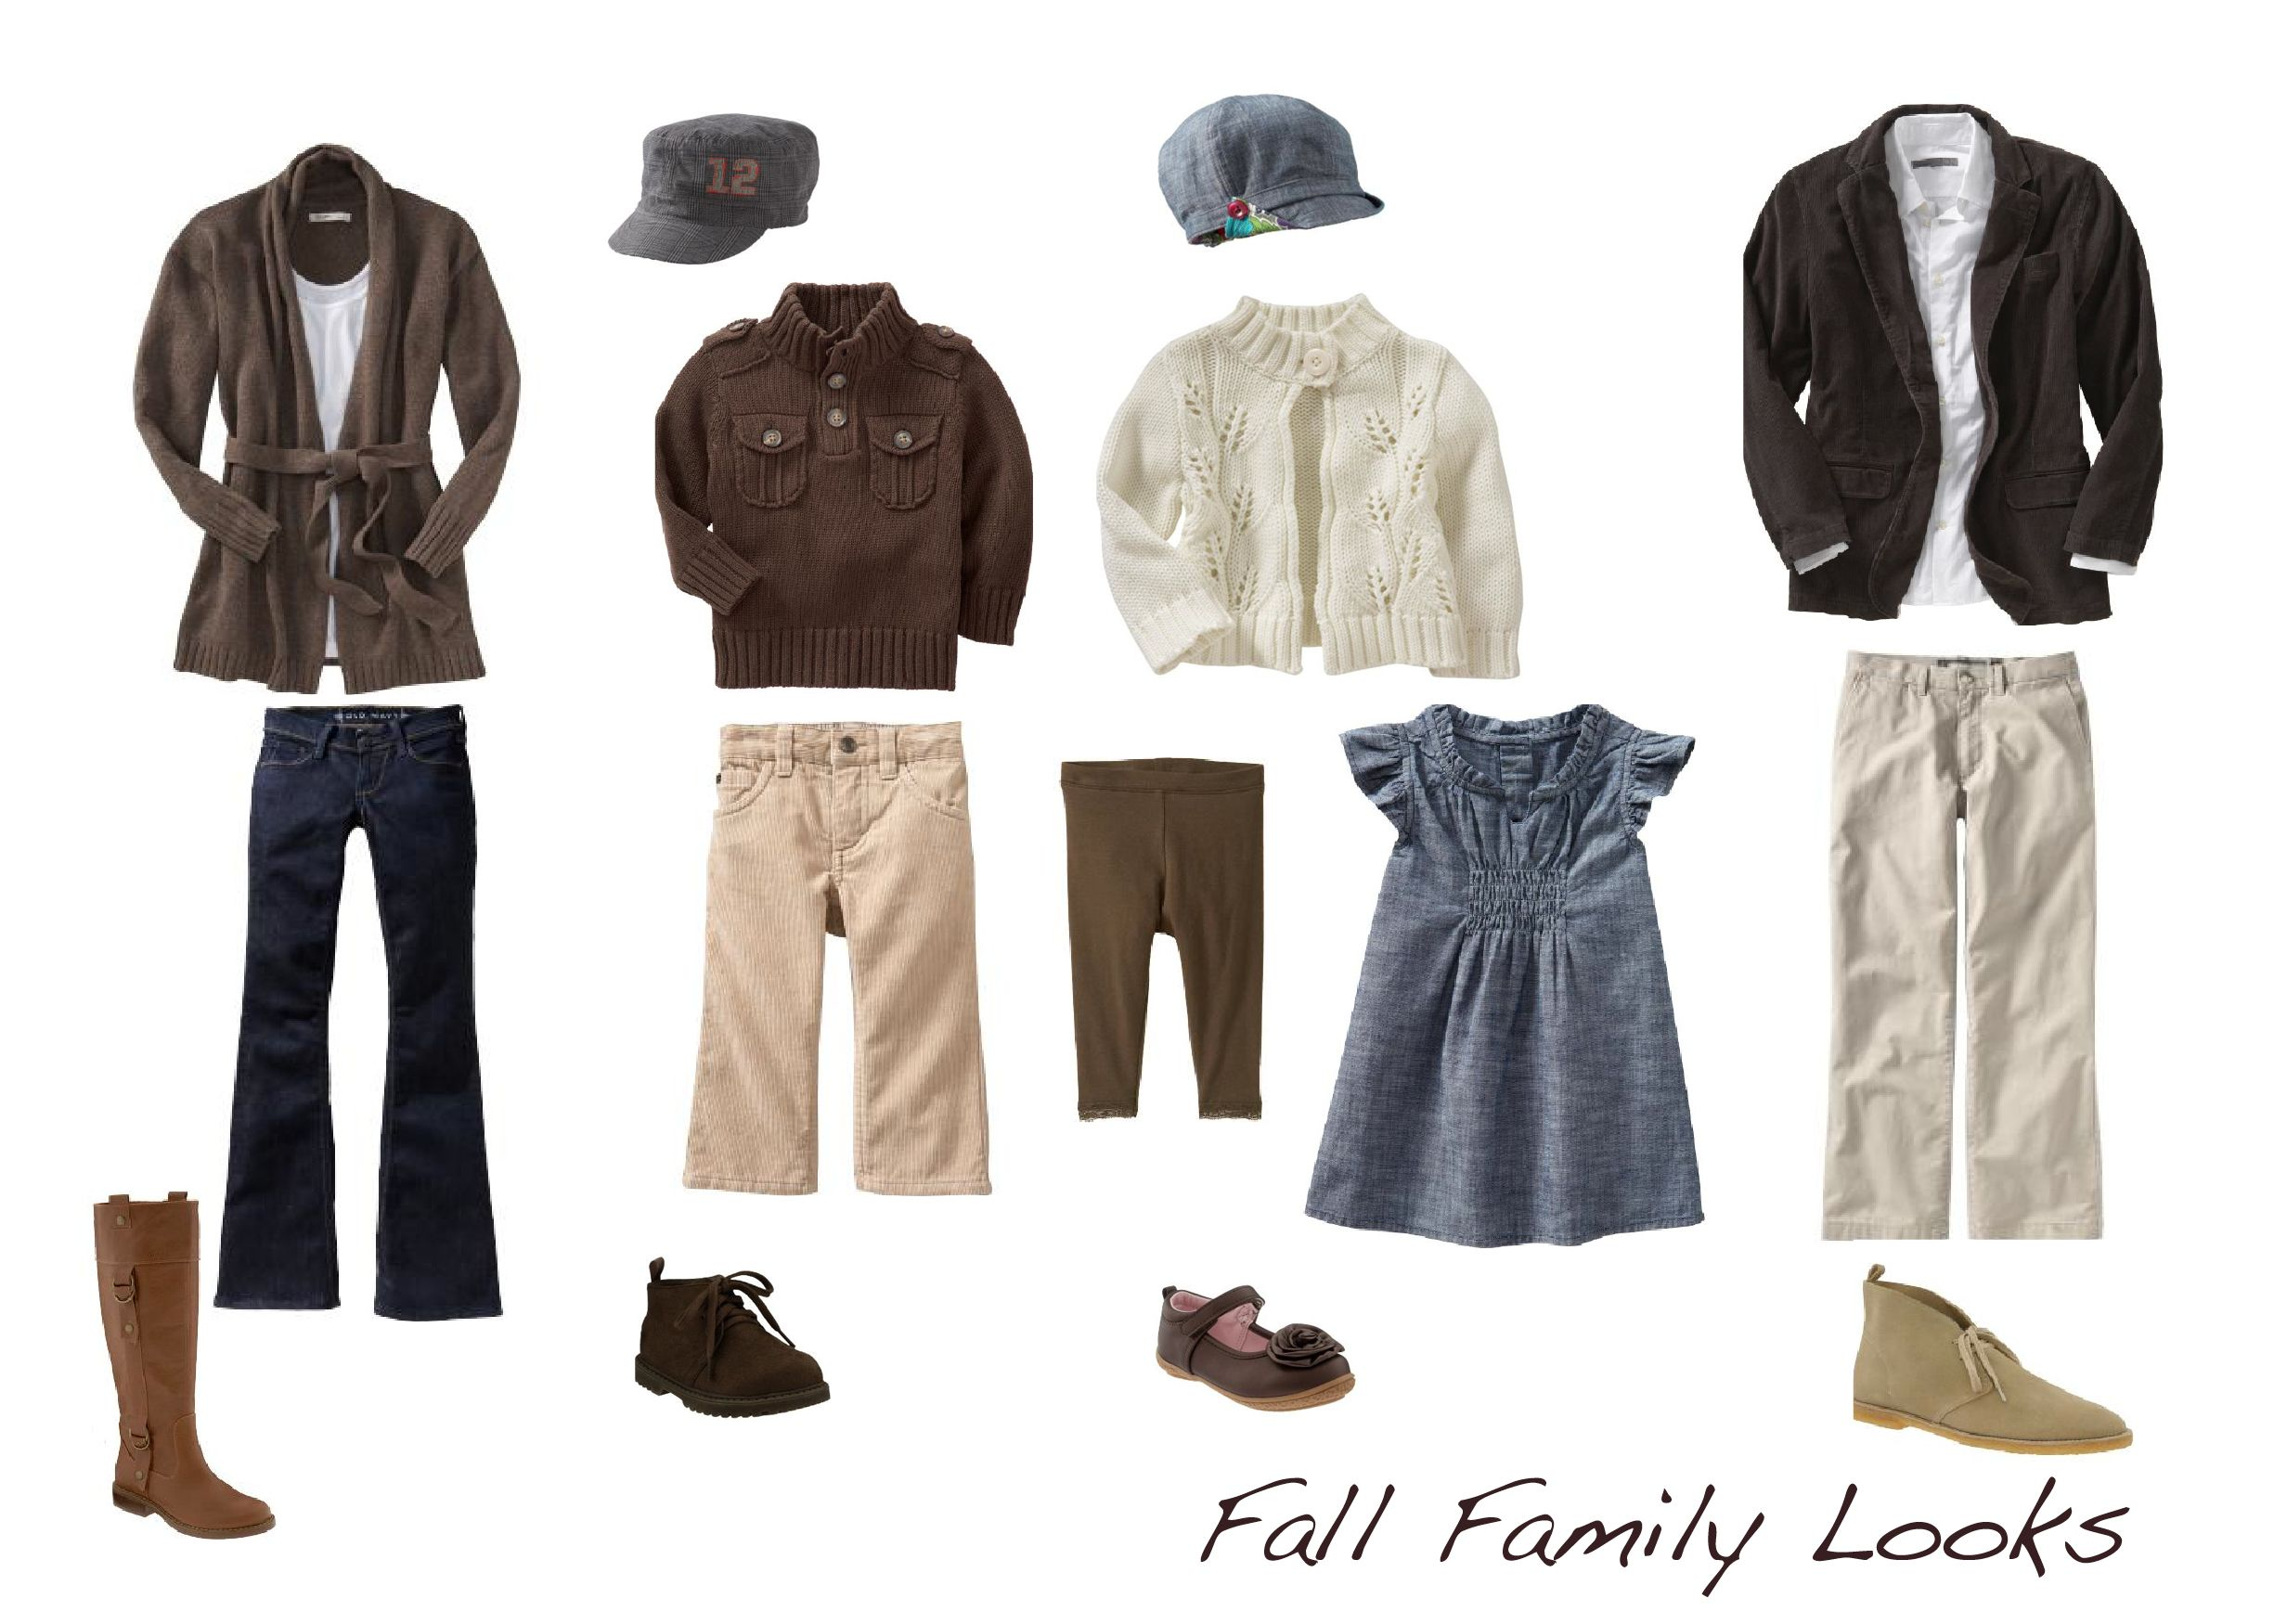 Fall Family Looks | Photo sessions, Family pictures and ...